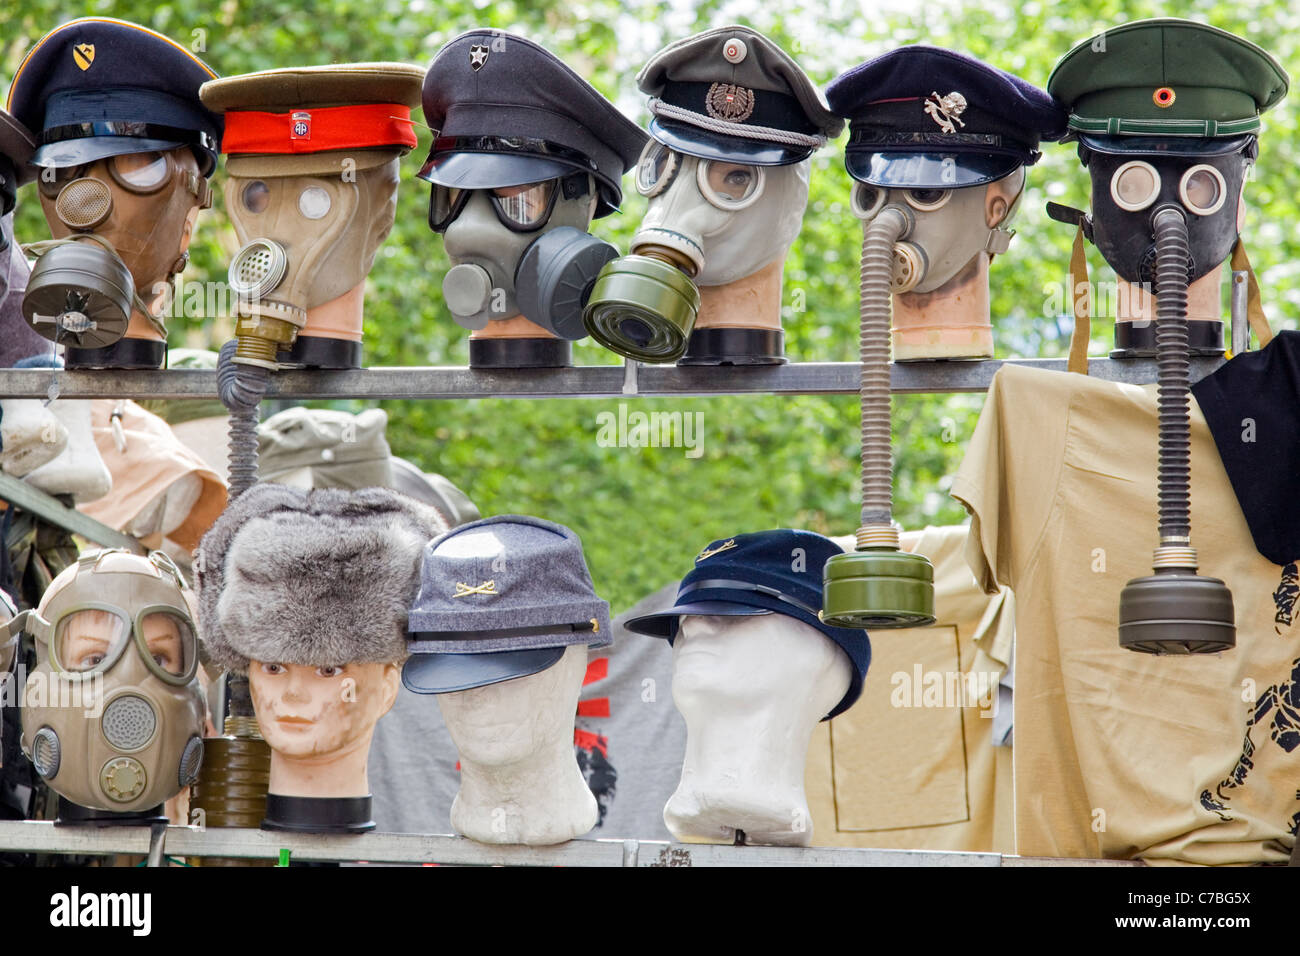 Set of gas masks from the second world war - Stock Image